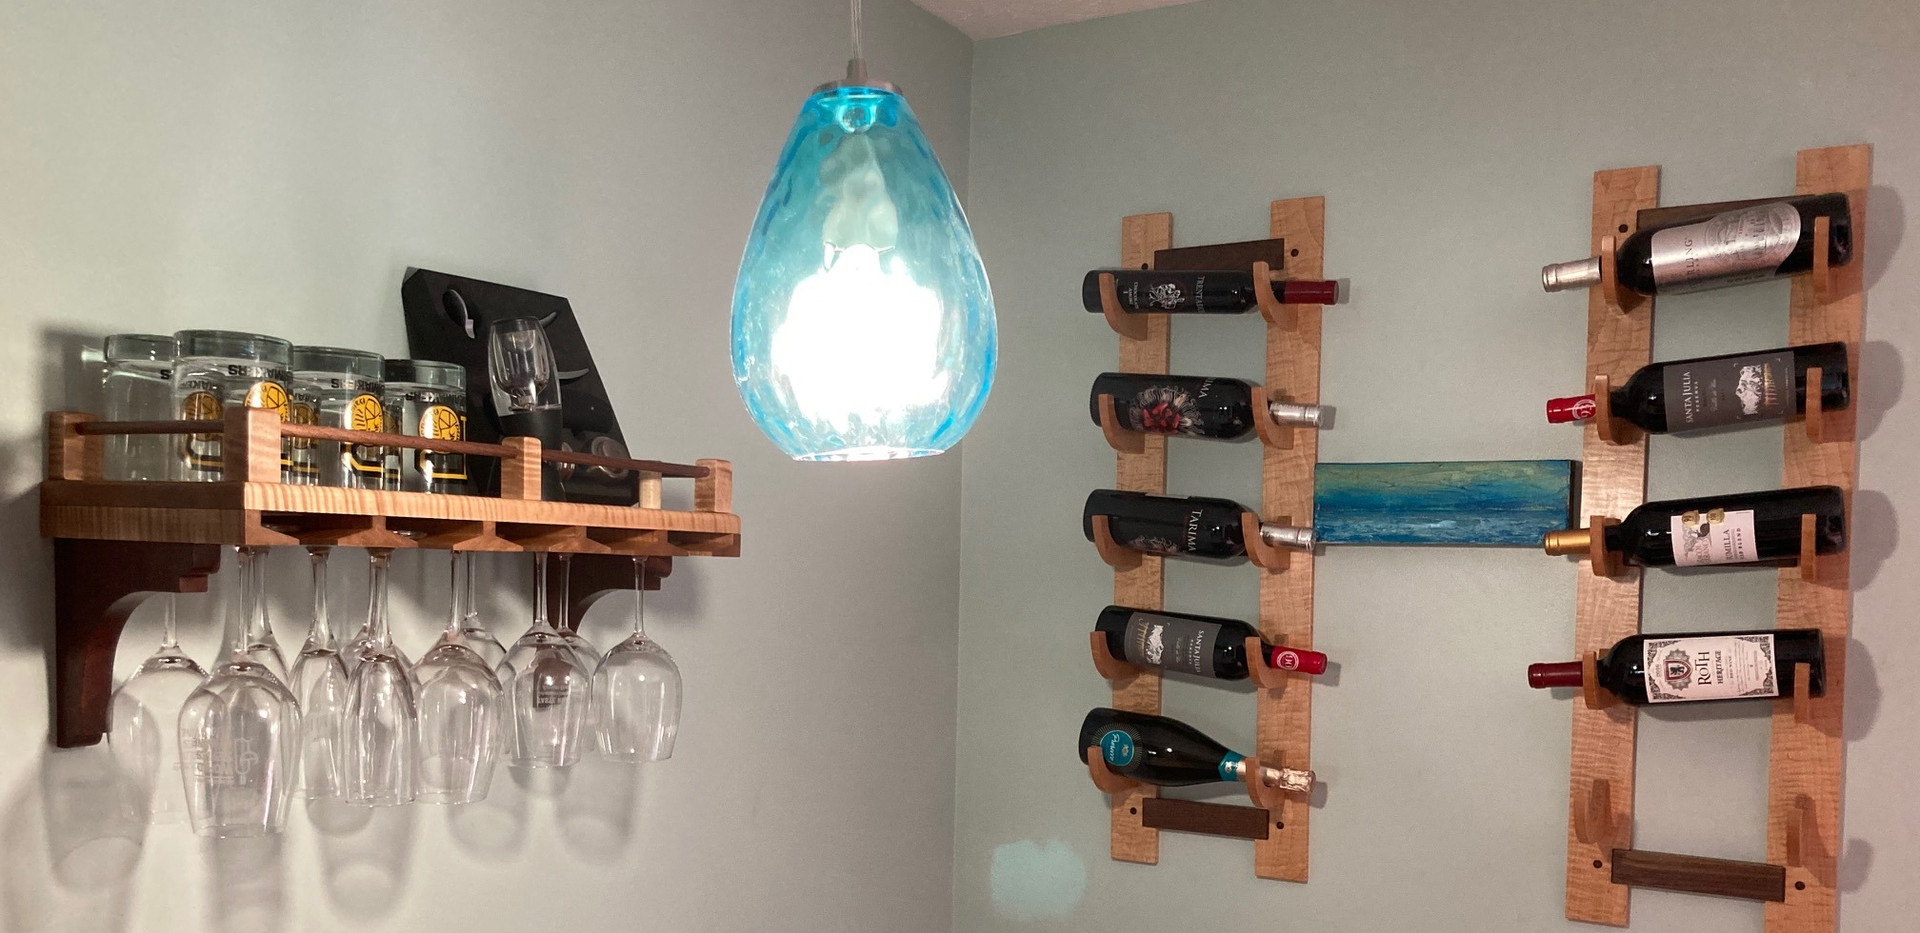 Bob wine & glass racks